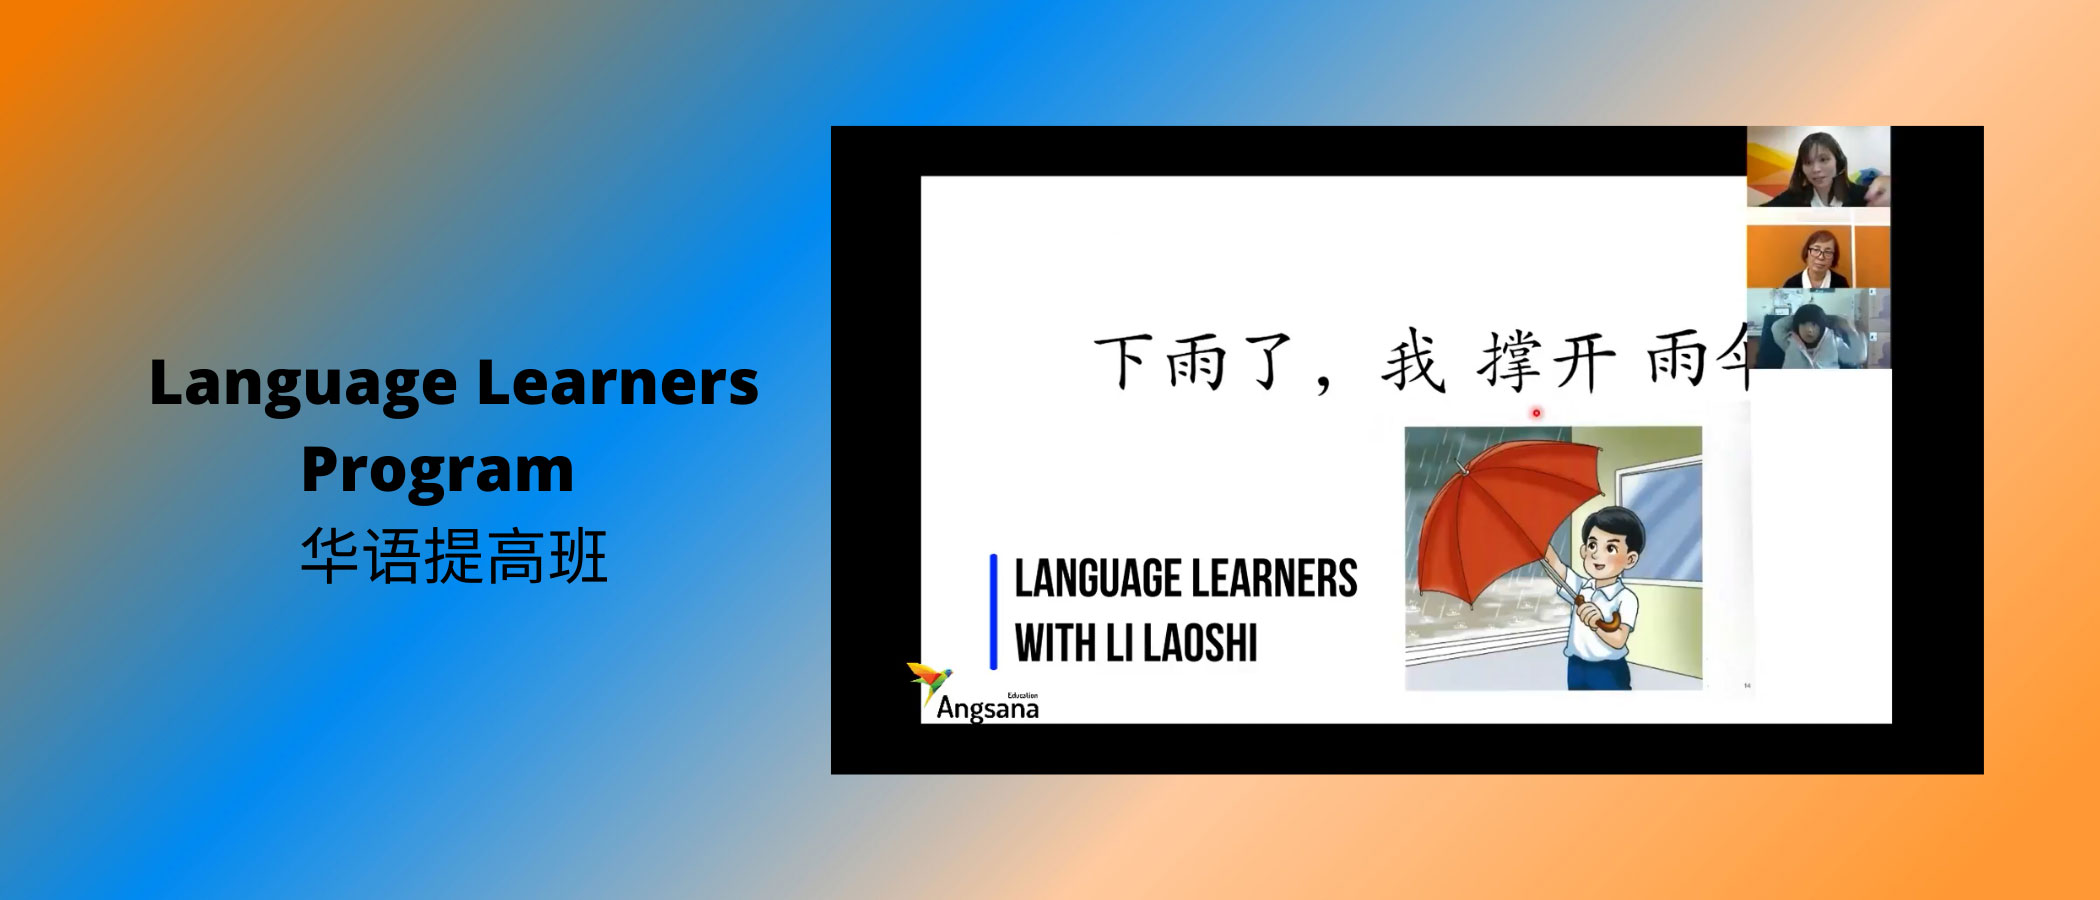 Language Learners